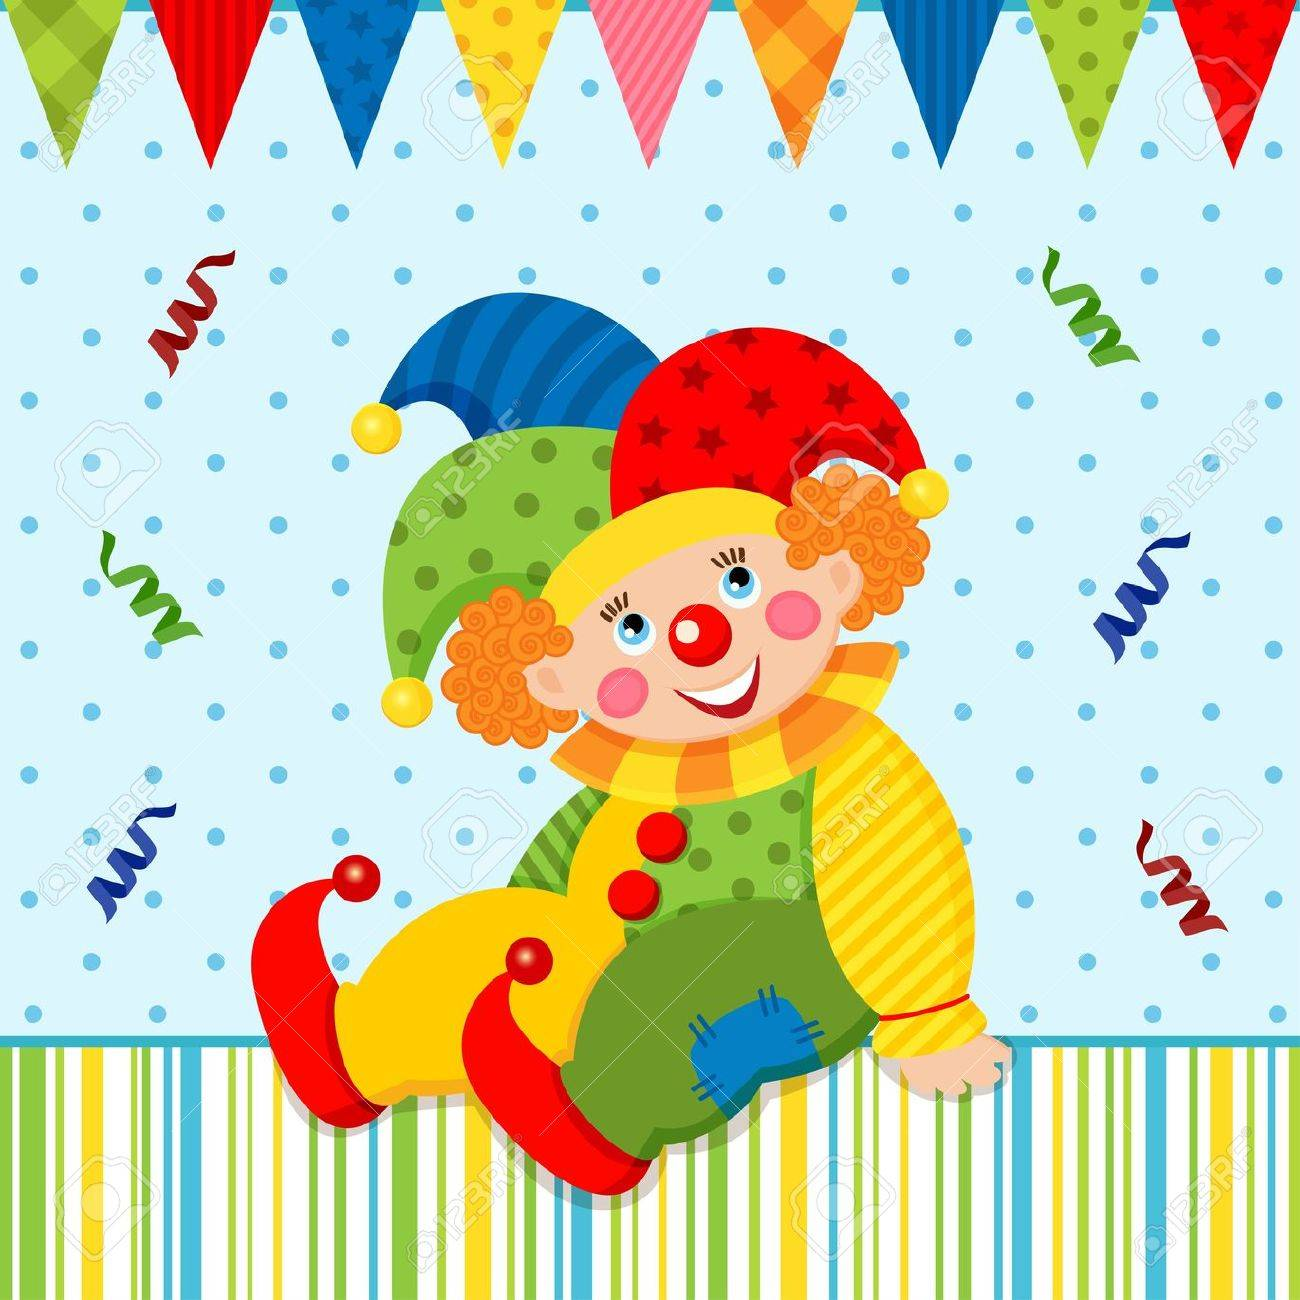 clown joker Standard-Bild - 18023467